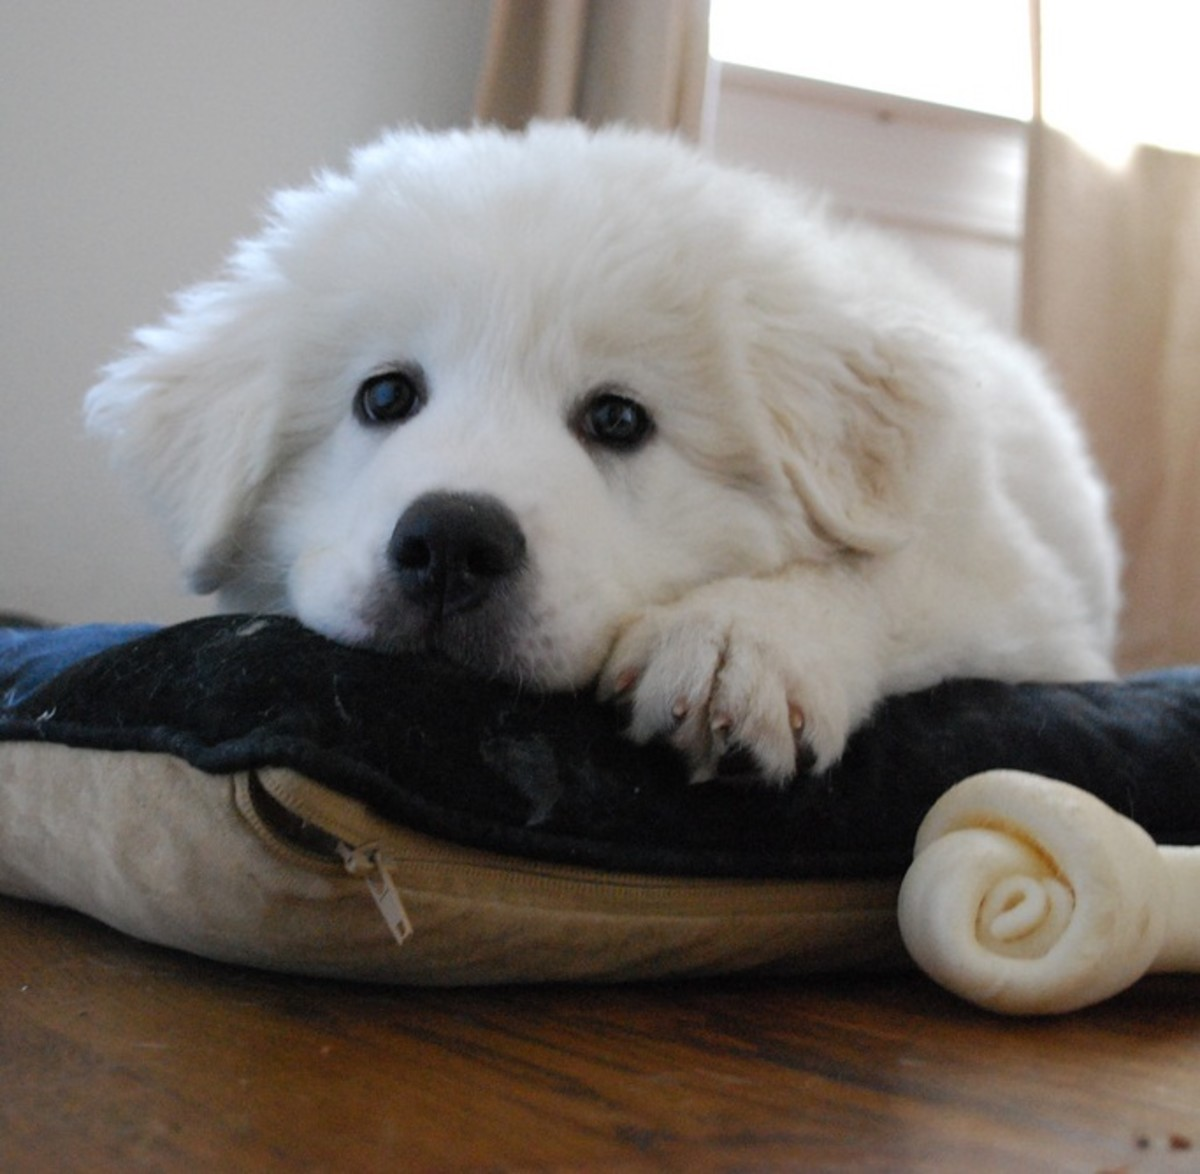 Livestock guard dogs like this Great Pyrenees were bred to be calm around prey.